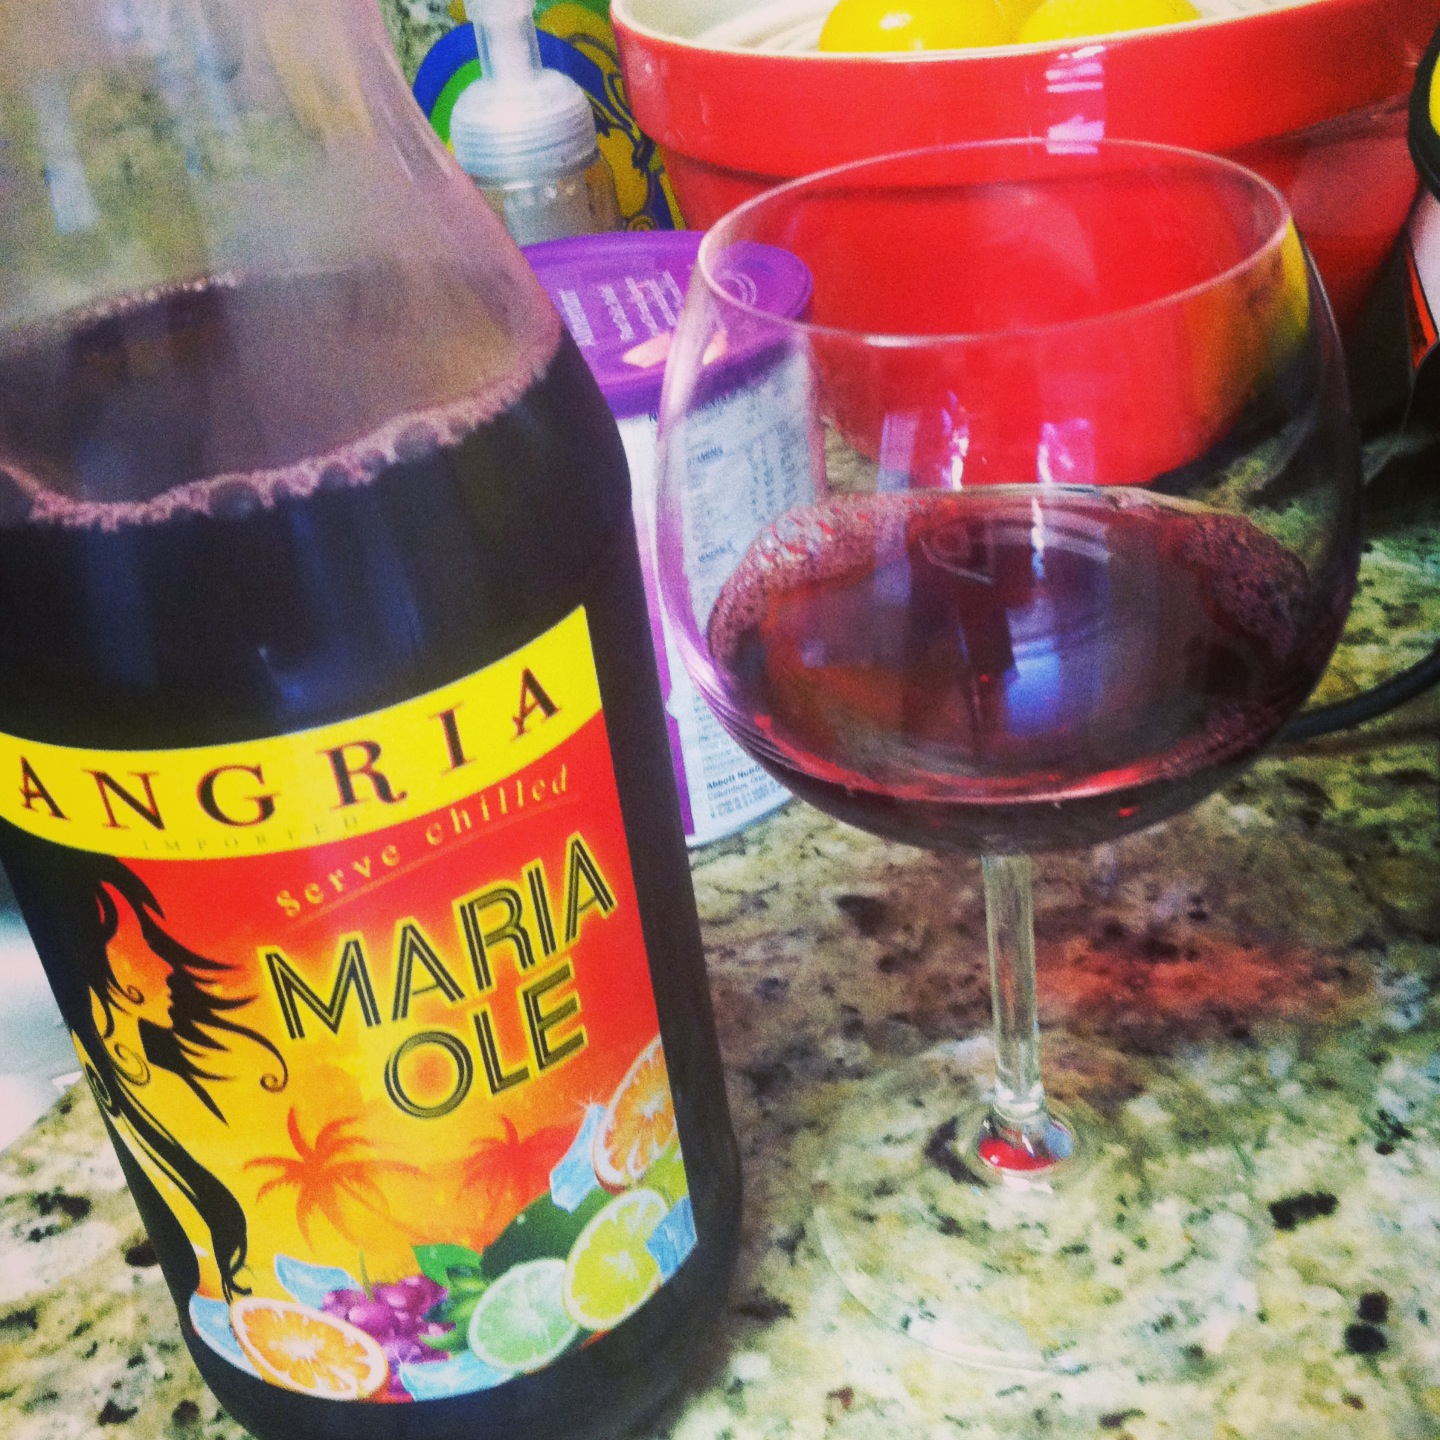 Tales from the east the best sangria s you 39 ve never tasted yet - Plastic sangria glasses ...